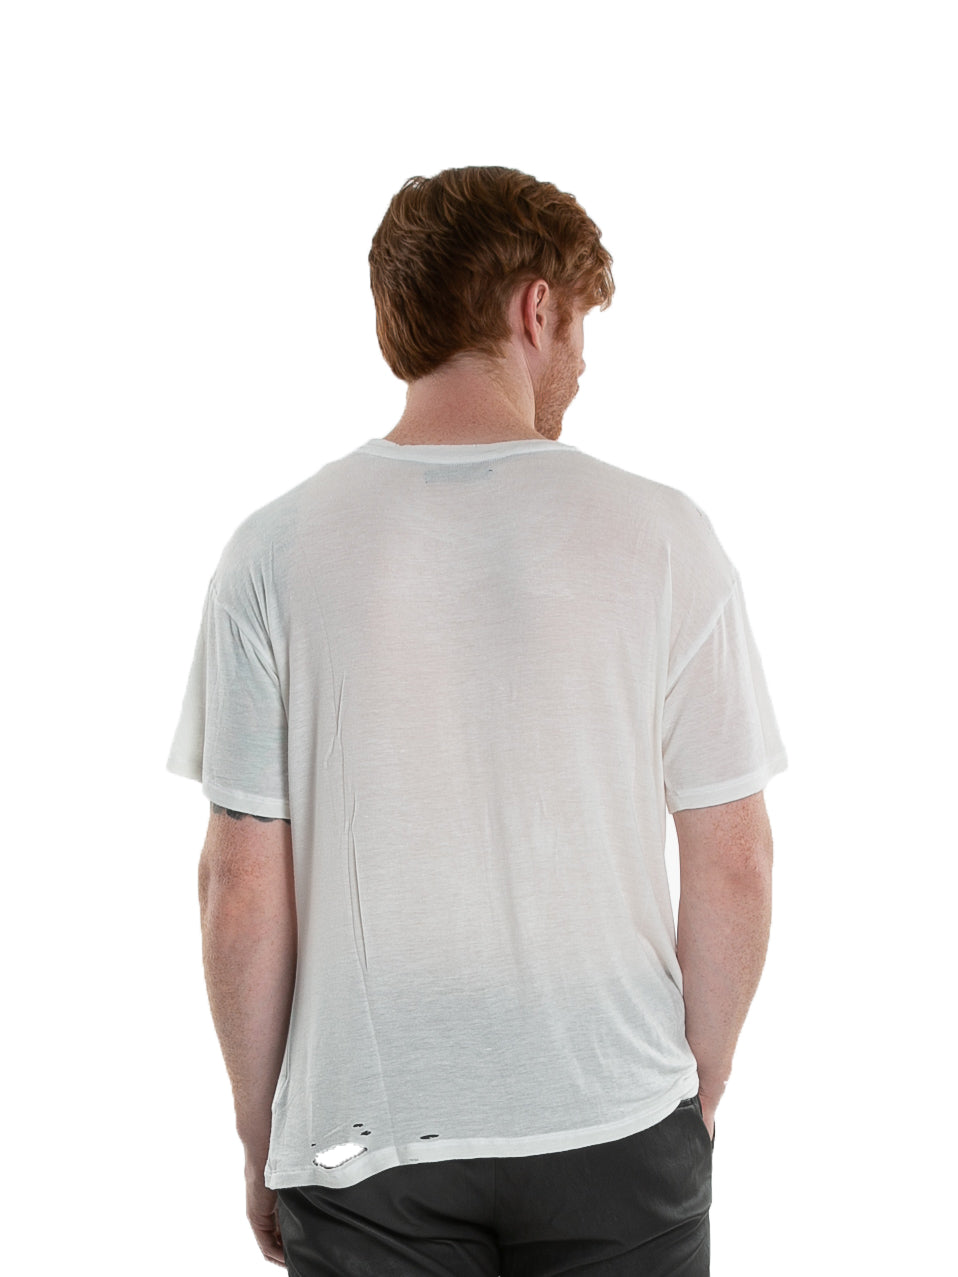 Backside of male model wearing Hand-stitched Tee in Ivory